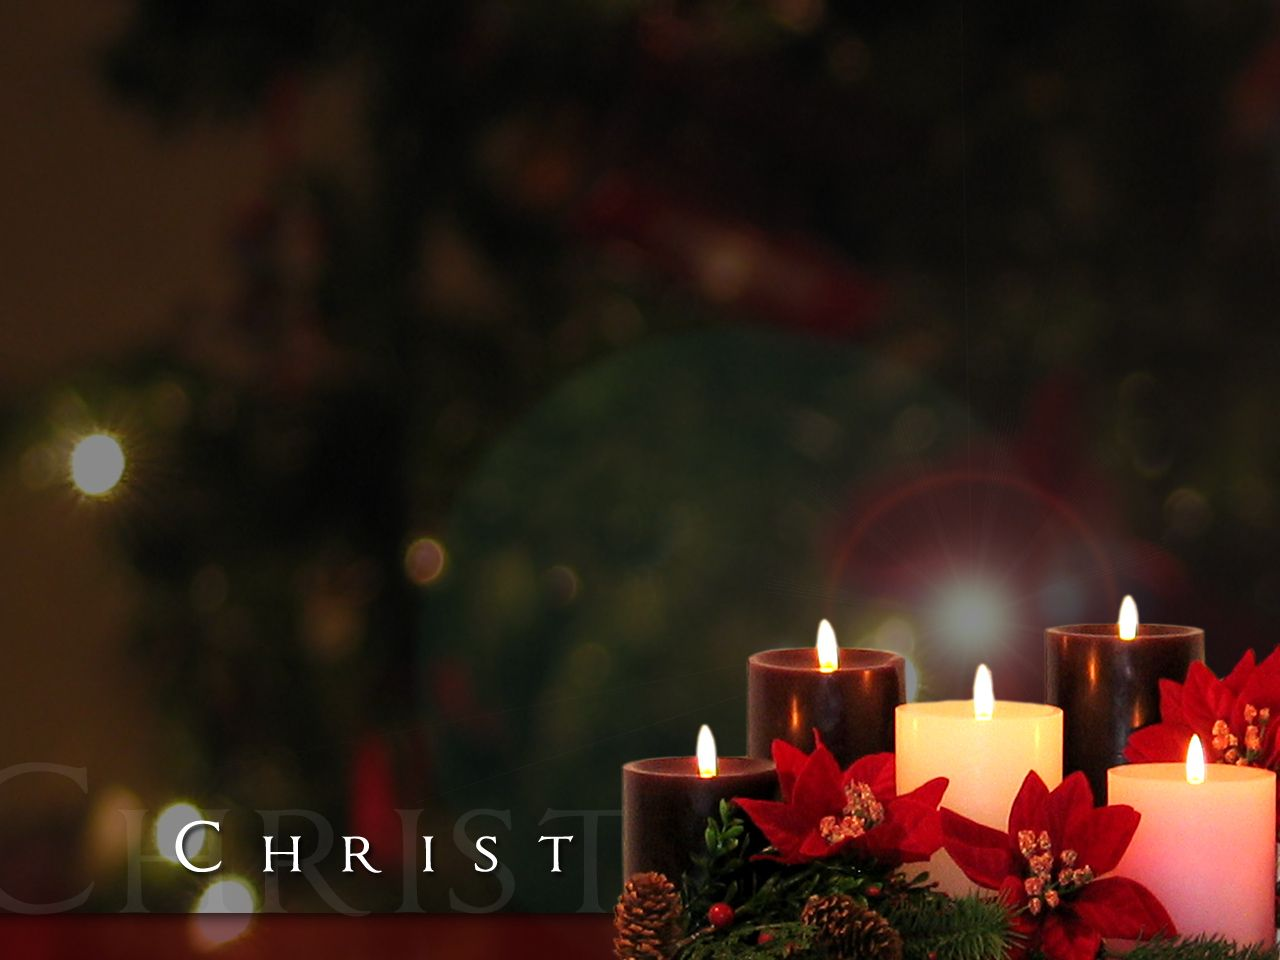 Christmas Candles Christmas Candle Wallpapers Download